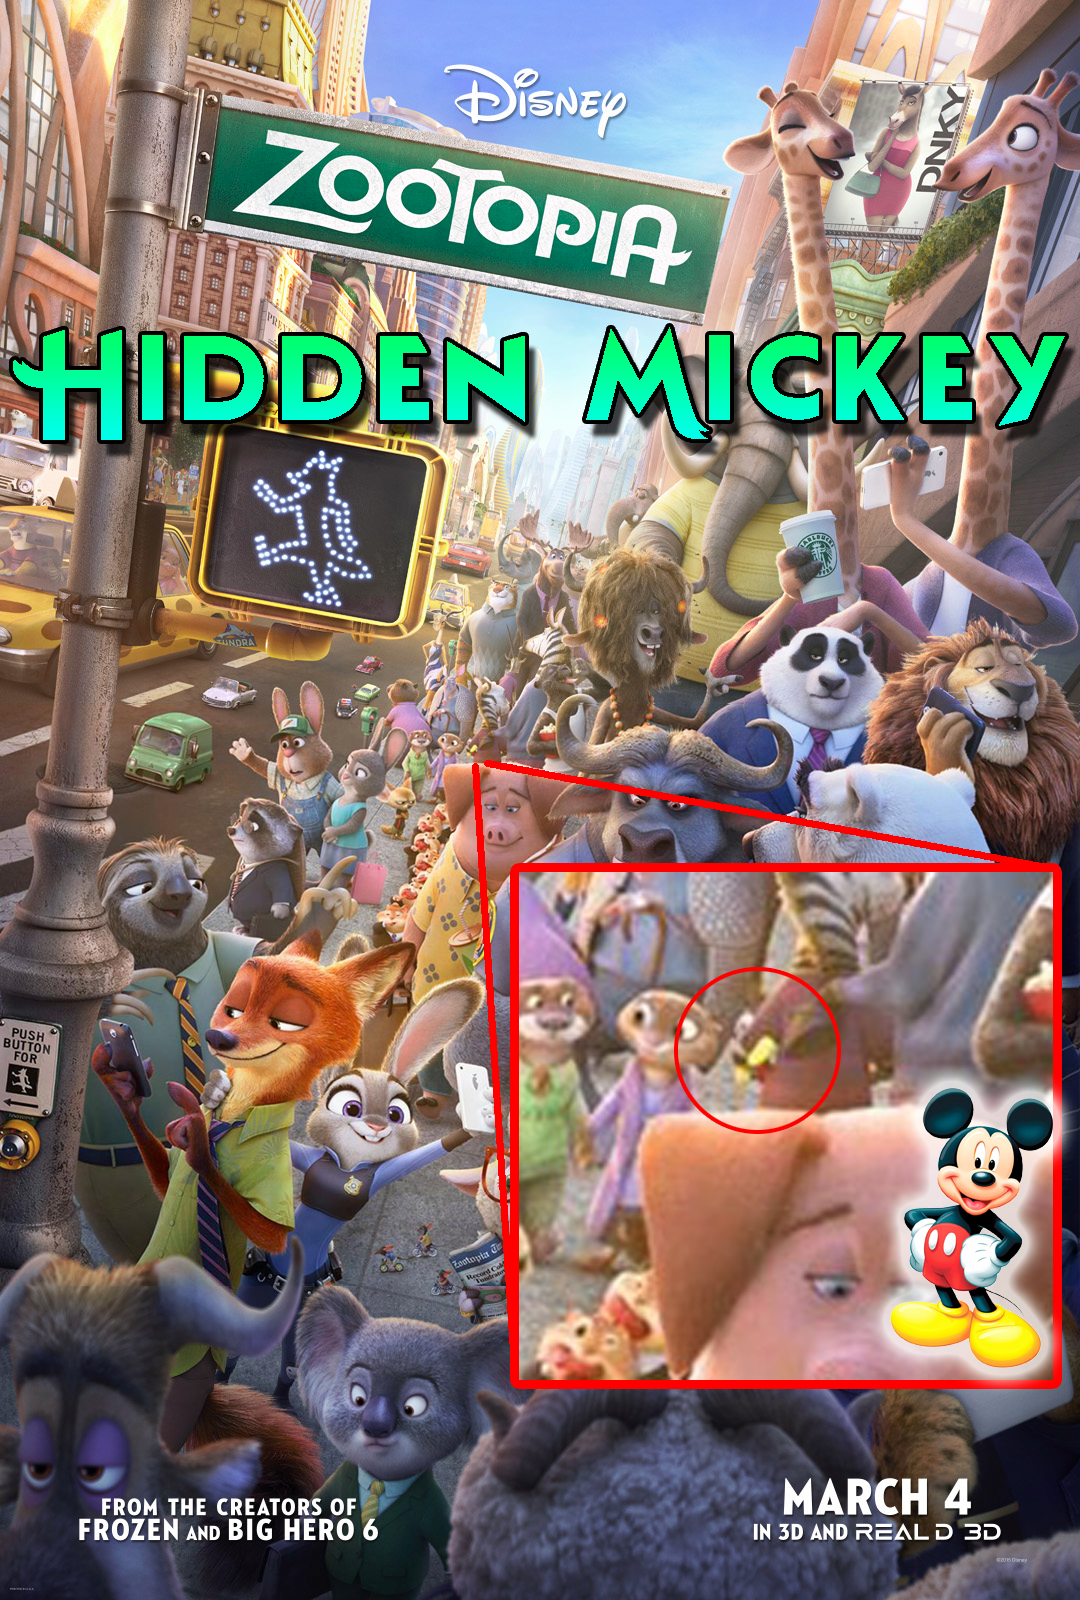 Zootopia%20Hidden%20Mickey%20in%20poster